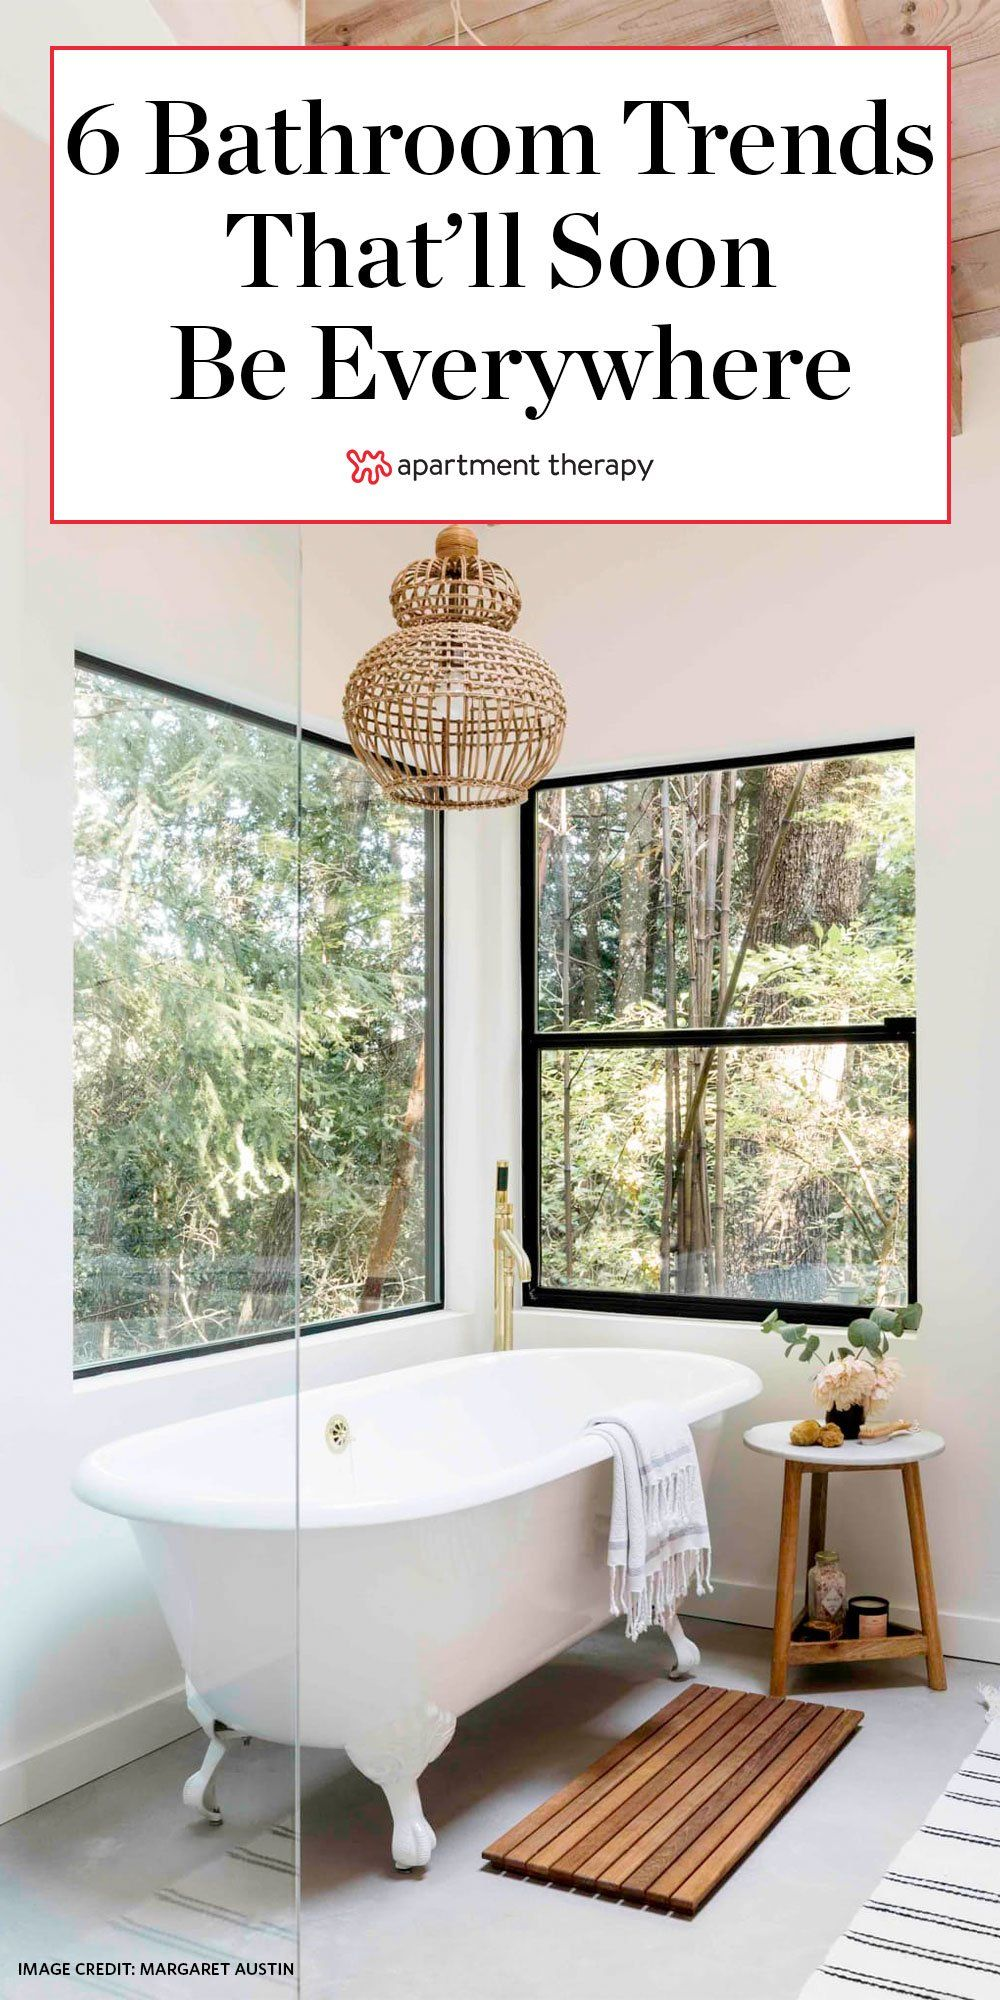 You Re Going To See These Bathroom Design Trends Everywhere By The End Of 2020 In 2020 Bathroom Trends Bathroom Design Trends Amazing Bathrooms